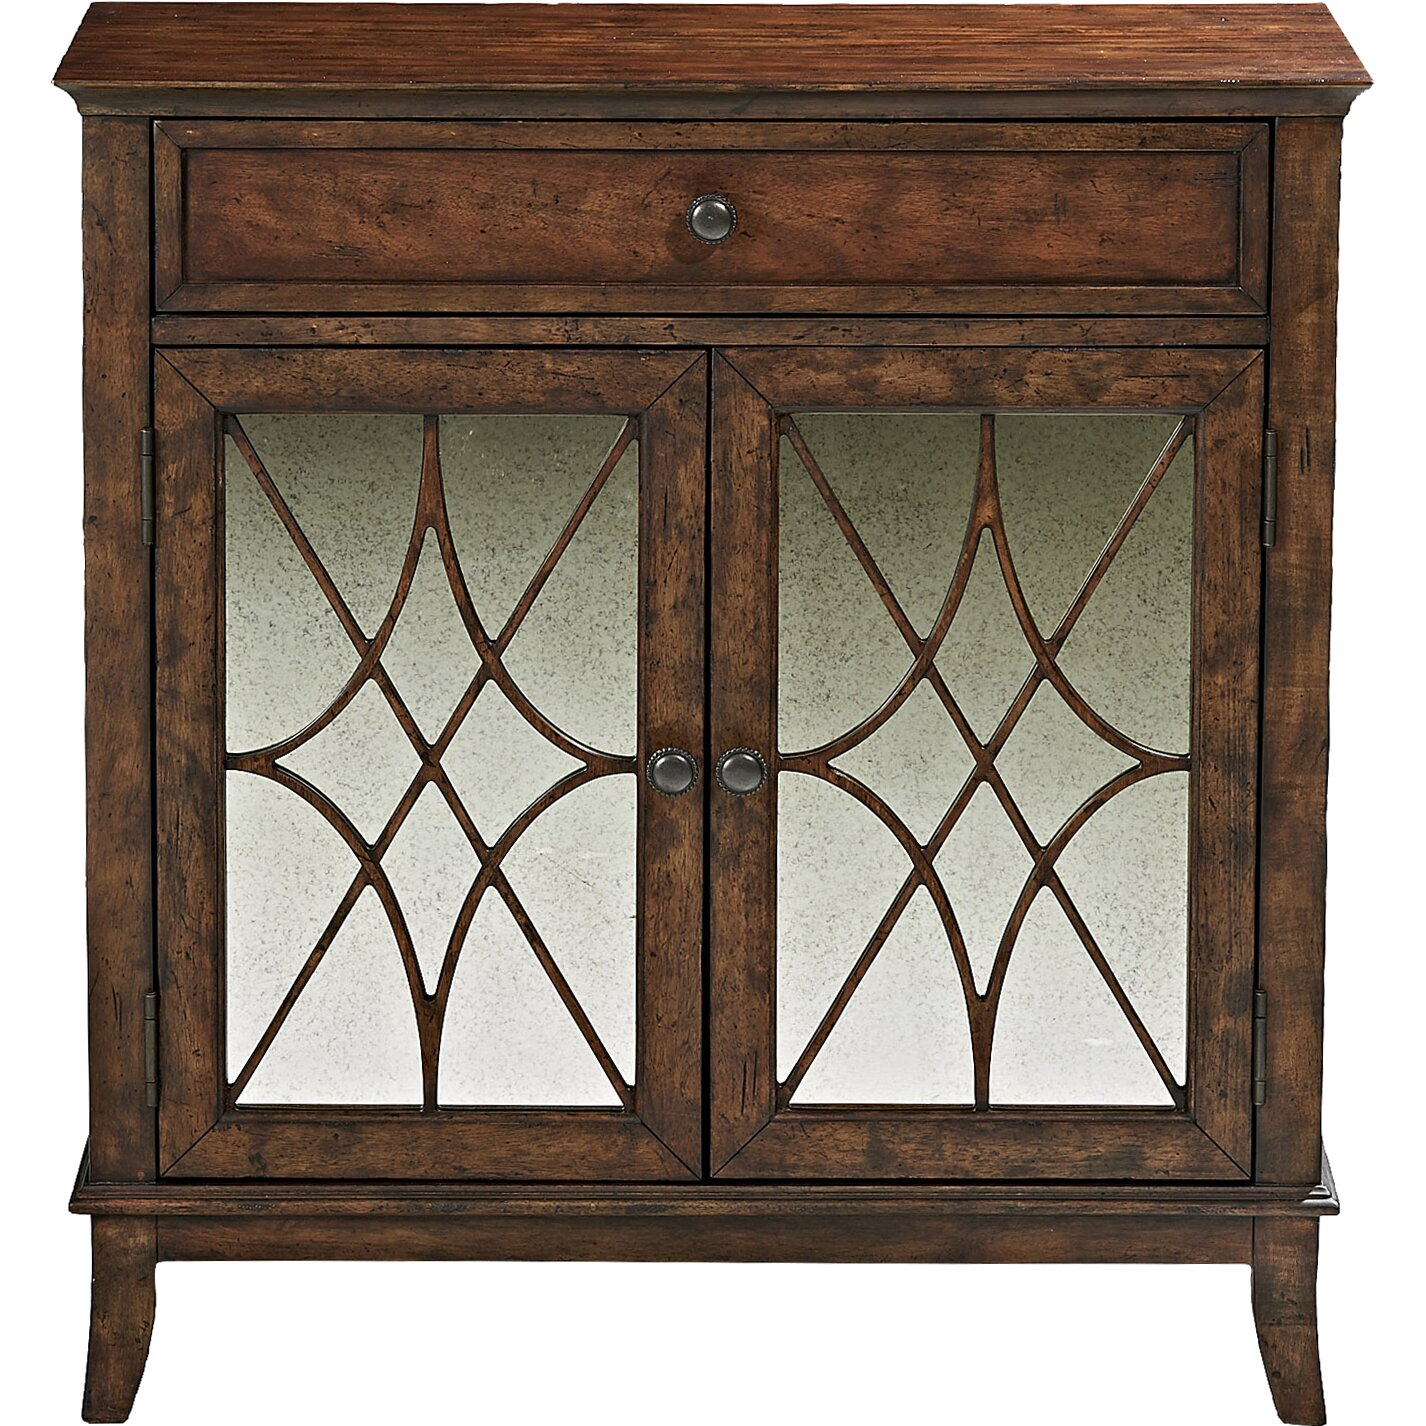 Doors and drawers adobe contemporary style flat panel cabinet door - Trisha Yearwood Home Collection Winslett 1 Drawer And 2 Door Cabinet